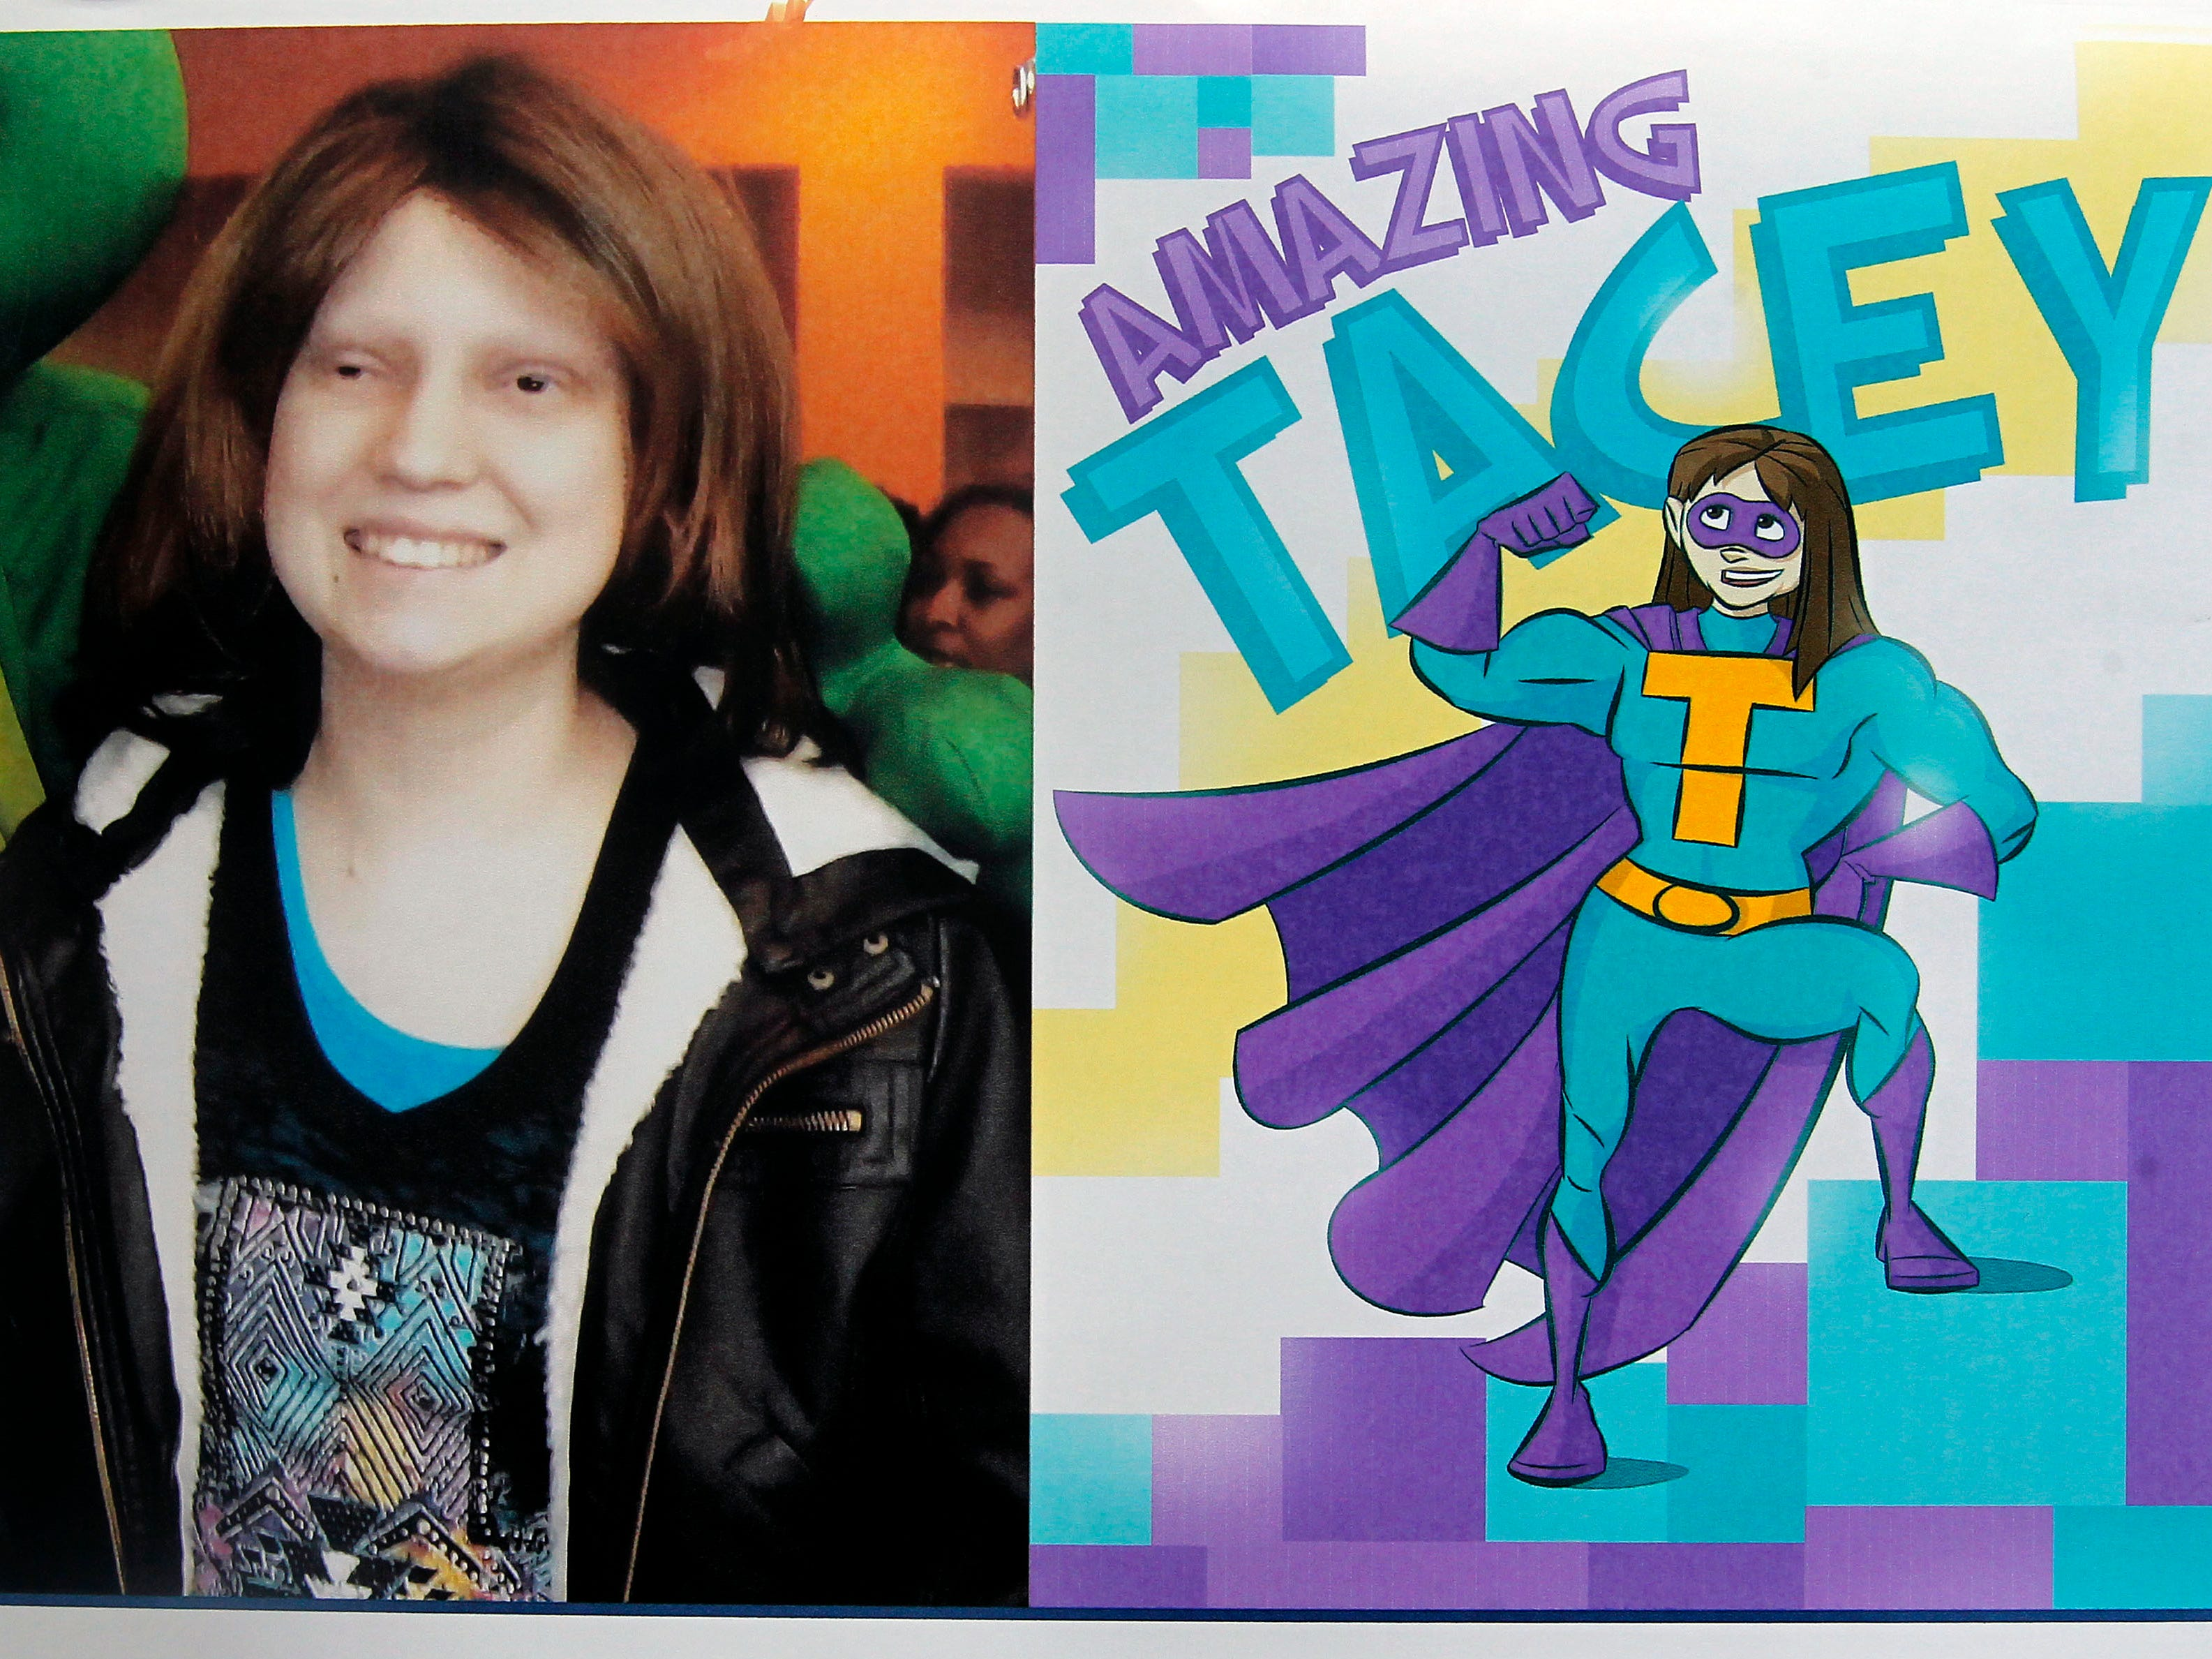 Amazing Tacey is a superhero identity created by Bryan Dyer, owner of You Are the Hero.